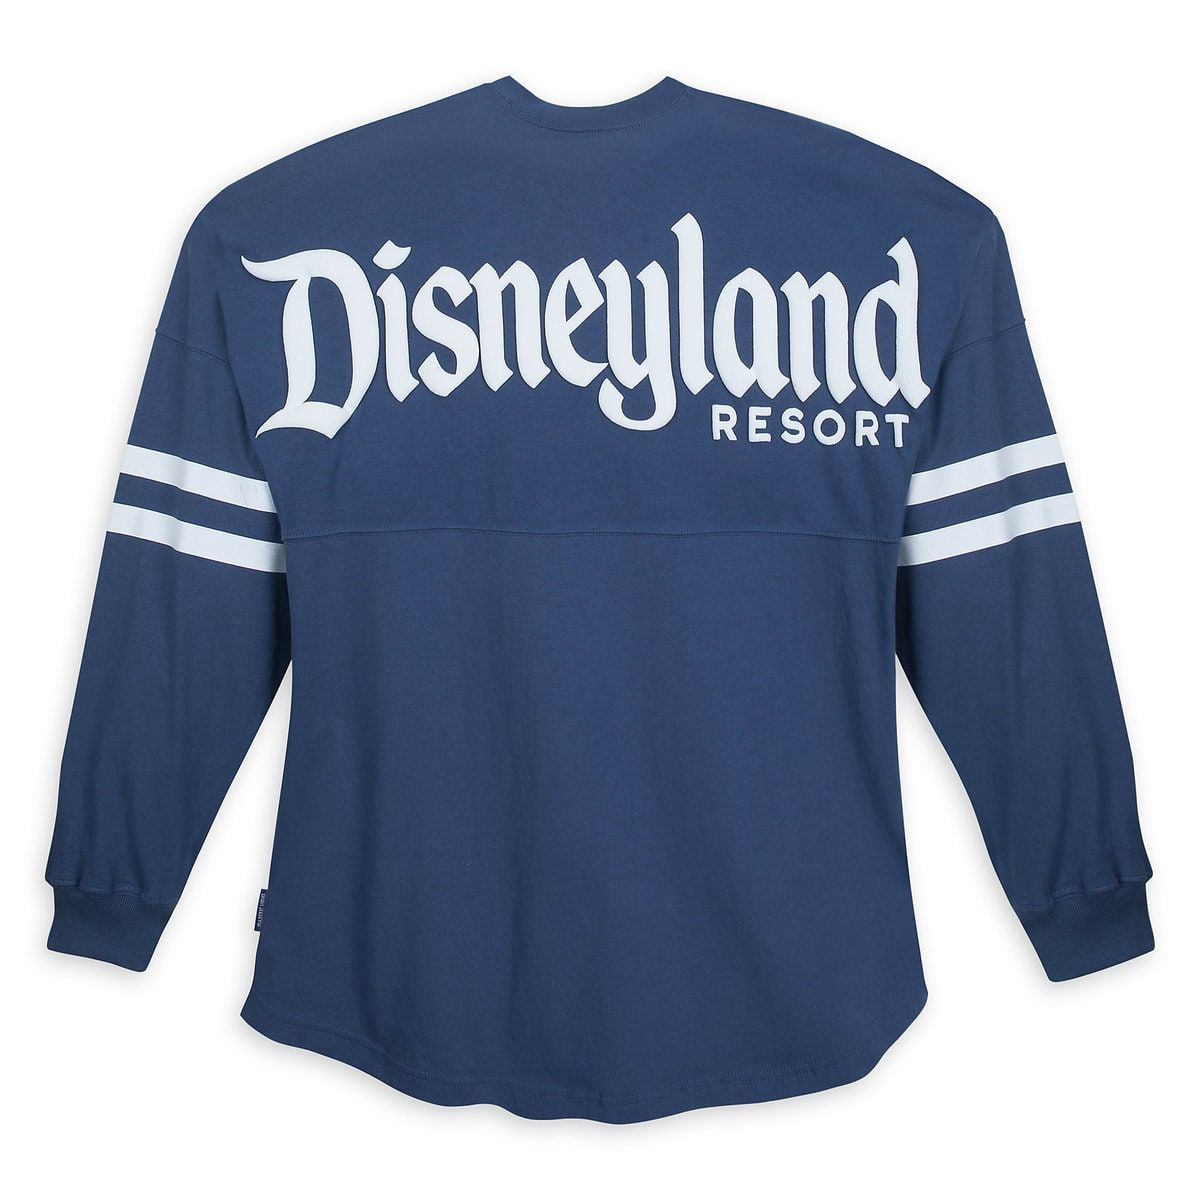 SOLD OUT Authentic Disney WDW Rose Gold Jersey shirt Unisex Size L